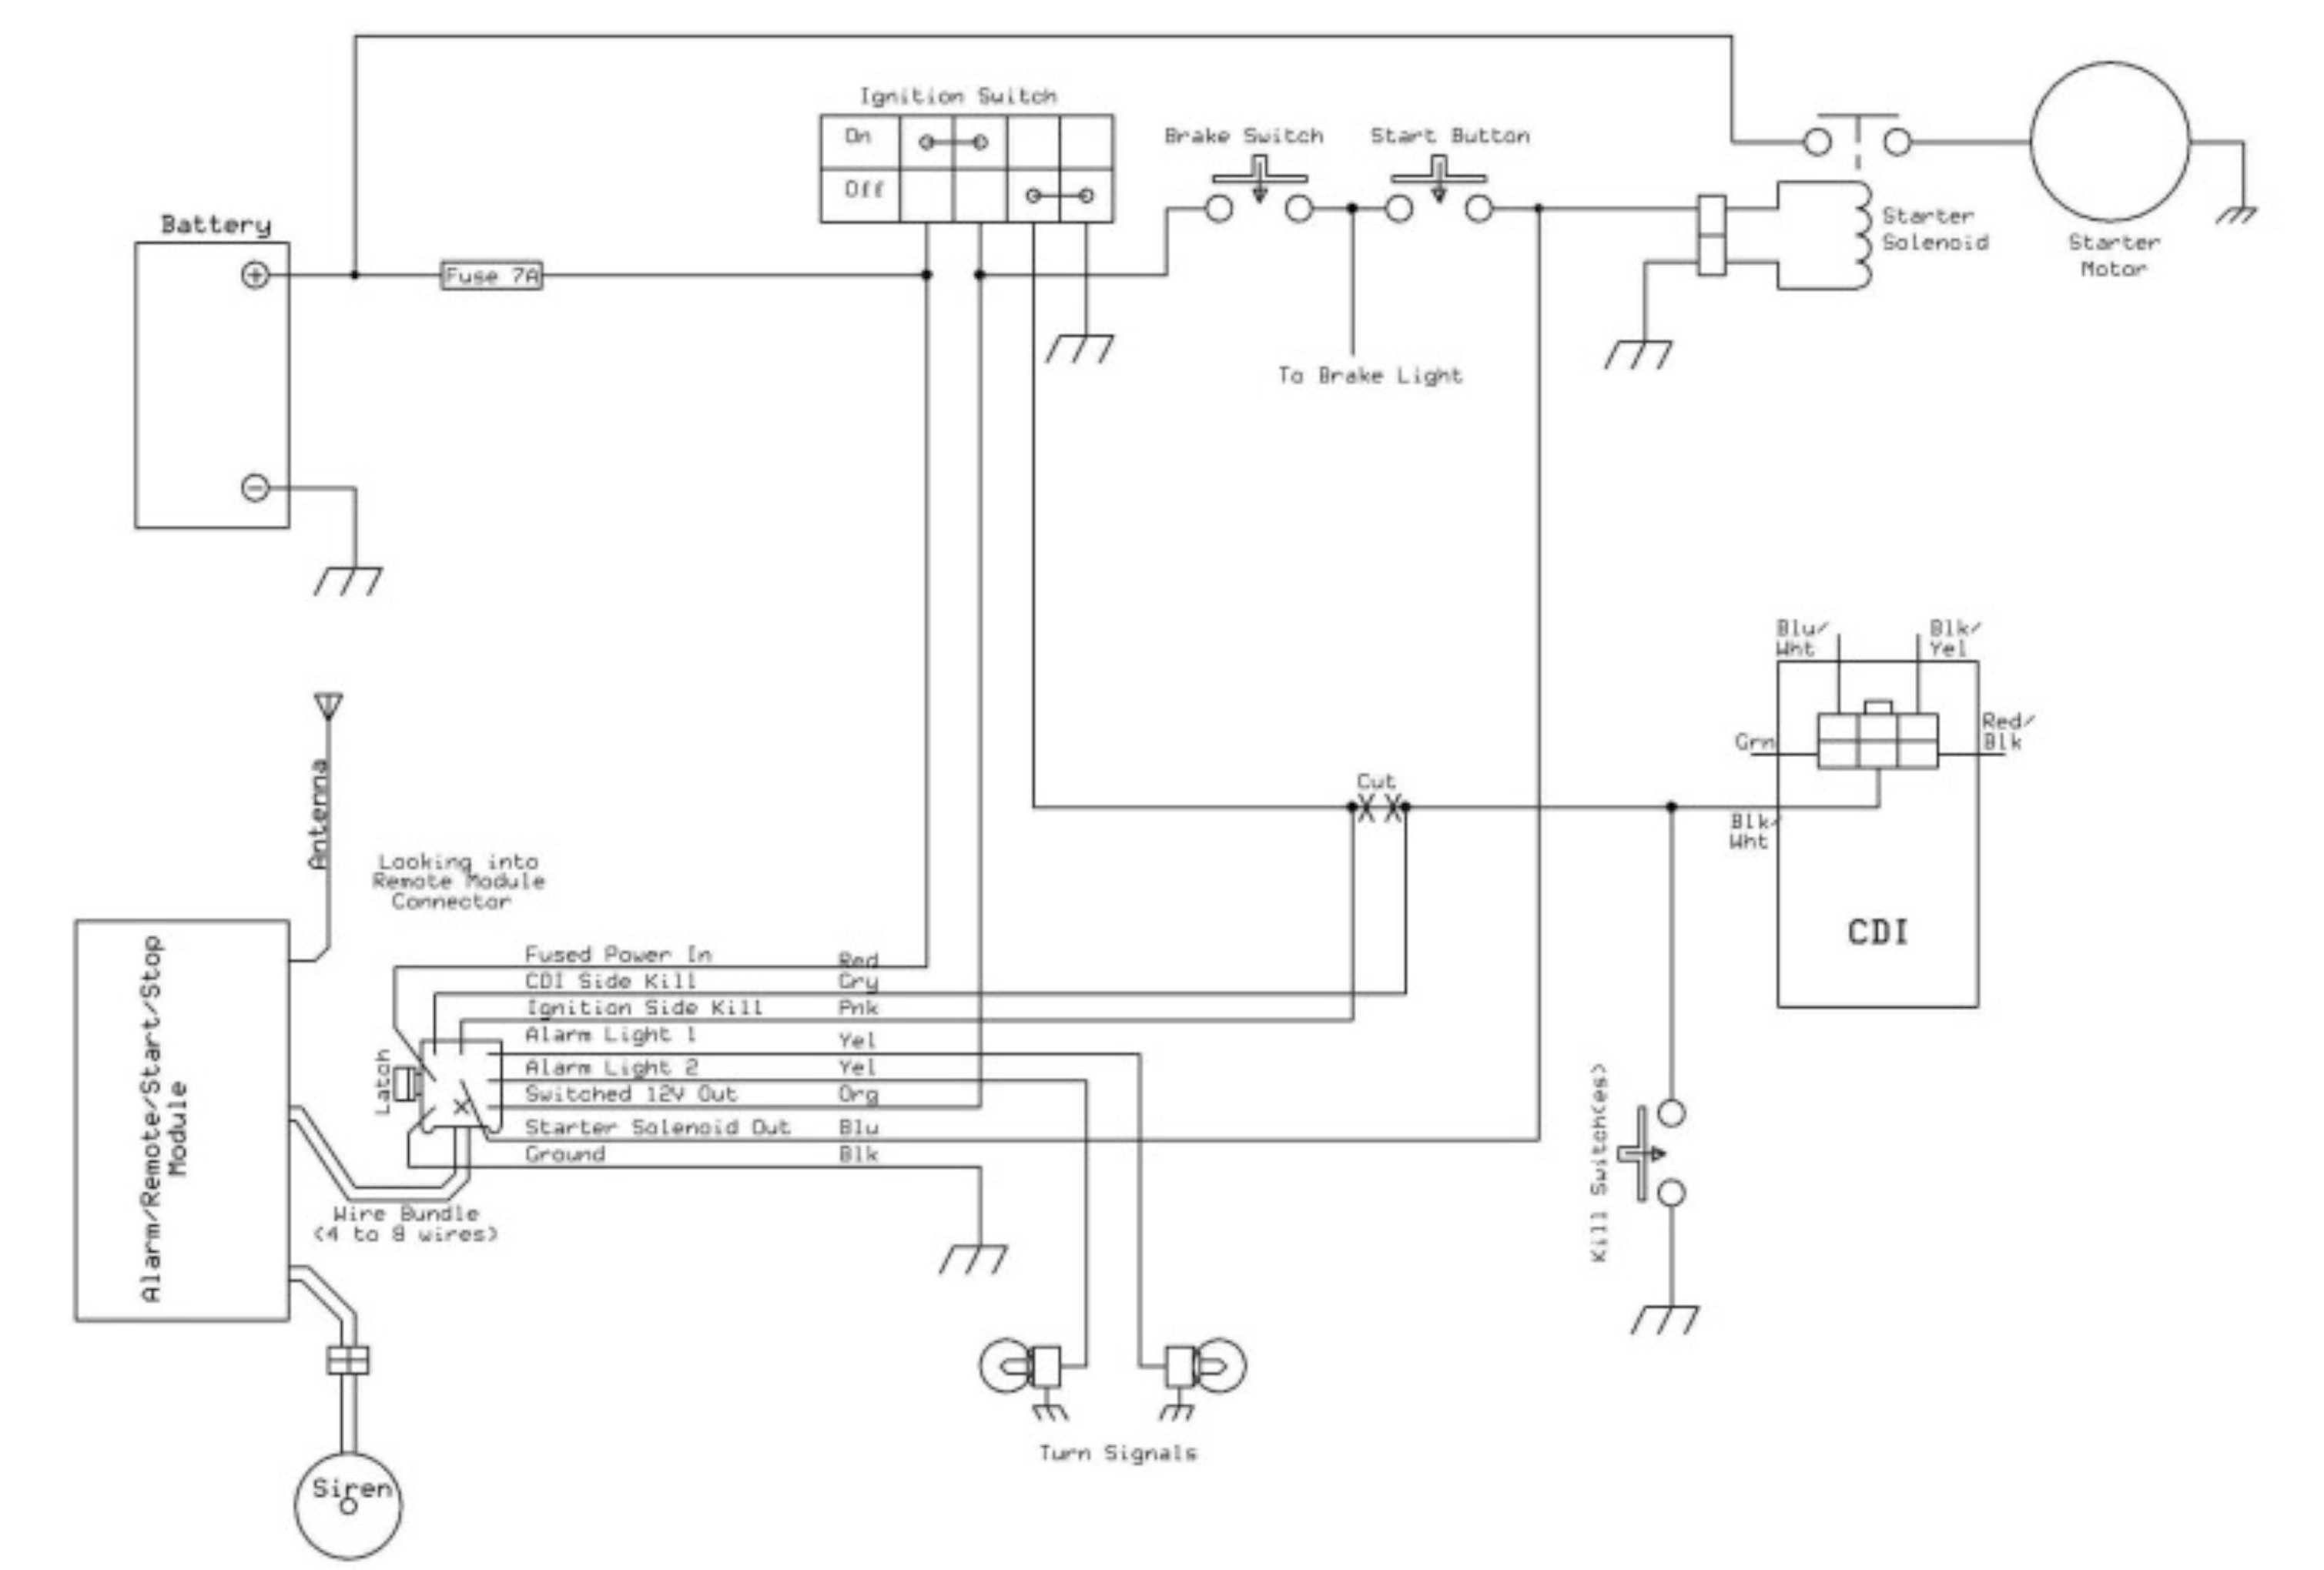 150cc atv wiring diagram trusted wiring diagram 4 pin cdi for 50cc atv wiring diagram residential electrical symbols u2022 coolster 150cc atv wiring diagram 150cc atv wiring diagram publicscrutiny Image collections